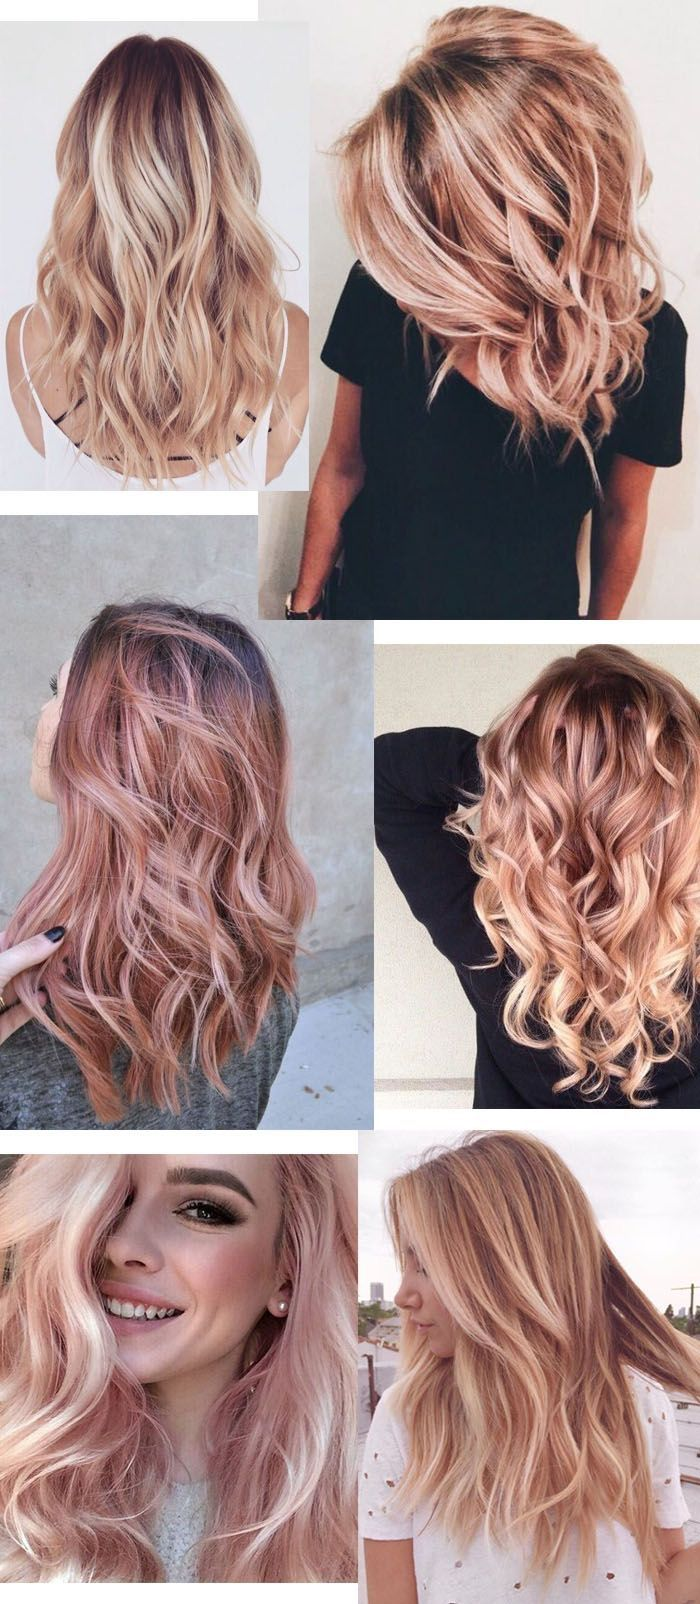 Pin By Marina On Hair Pinterest Hair Coloring Hair Style And